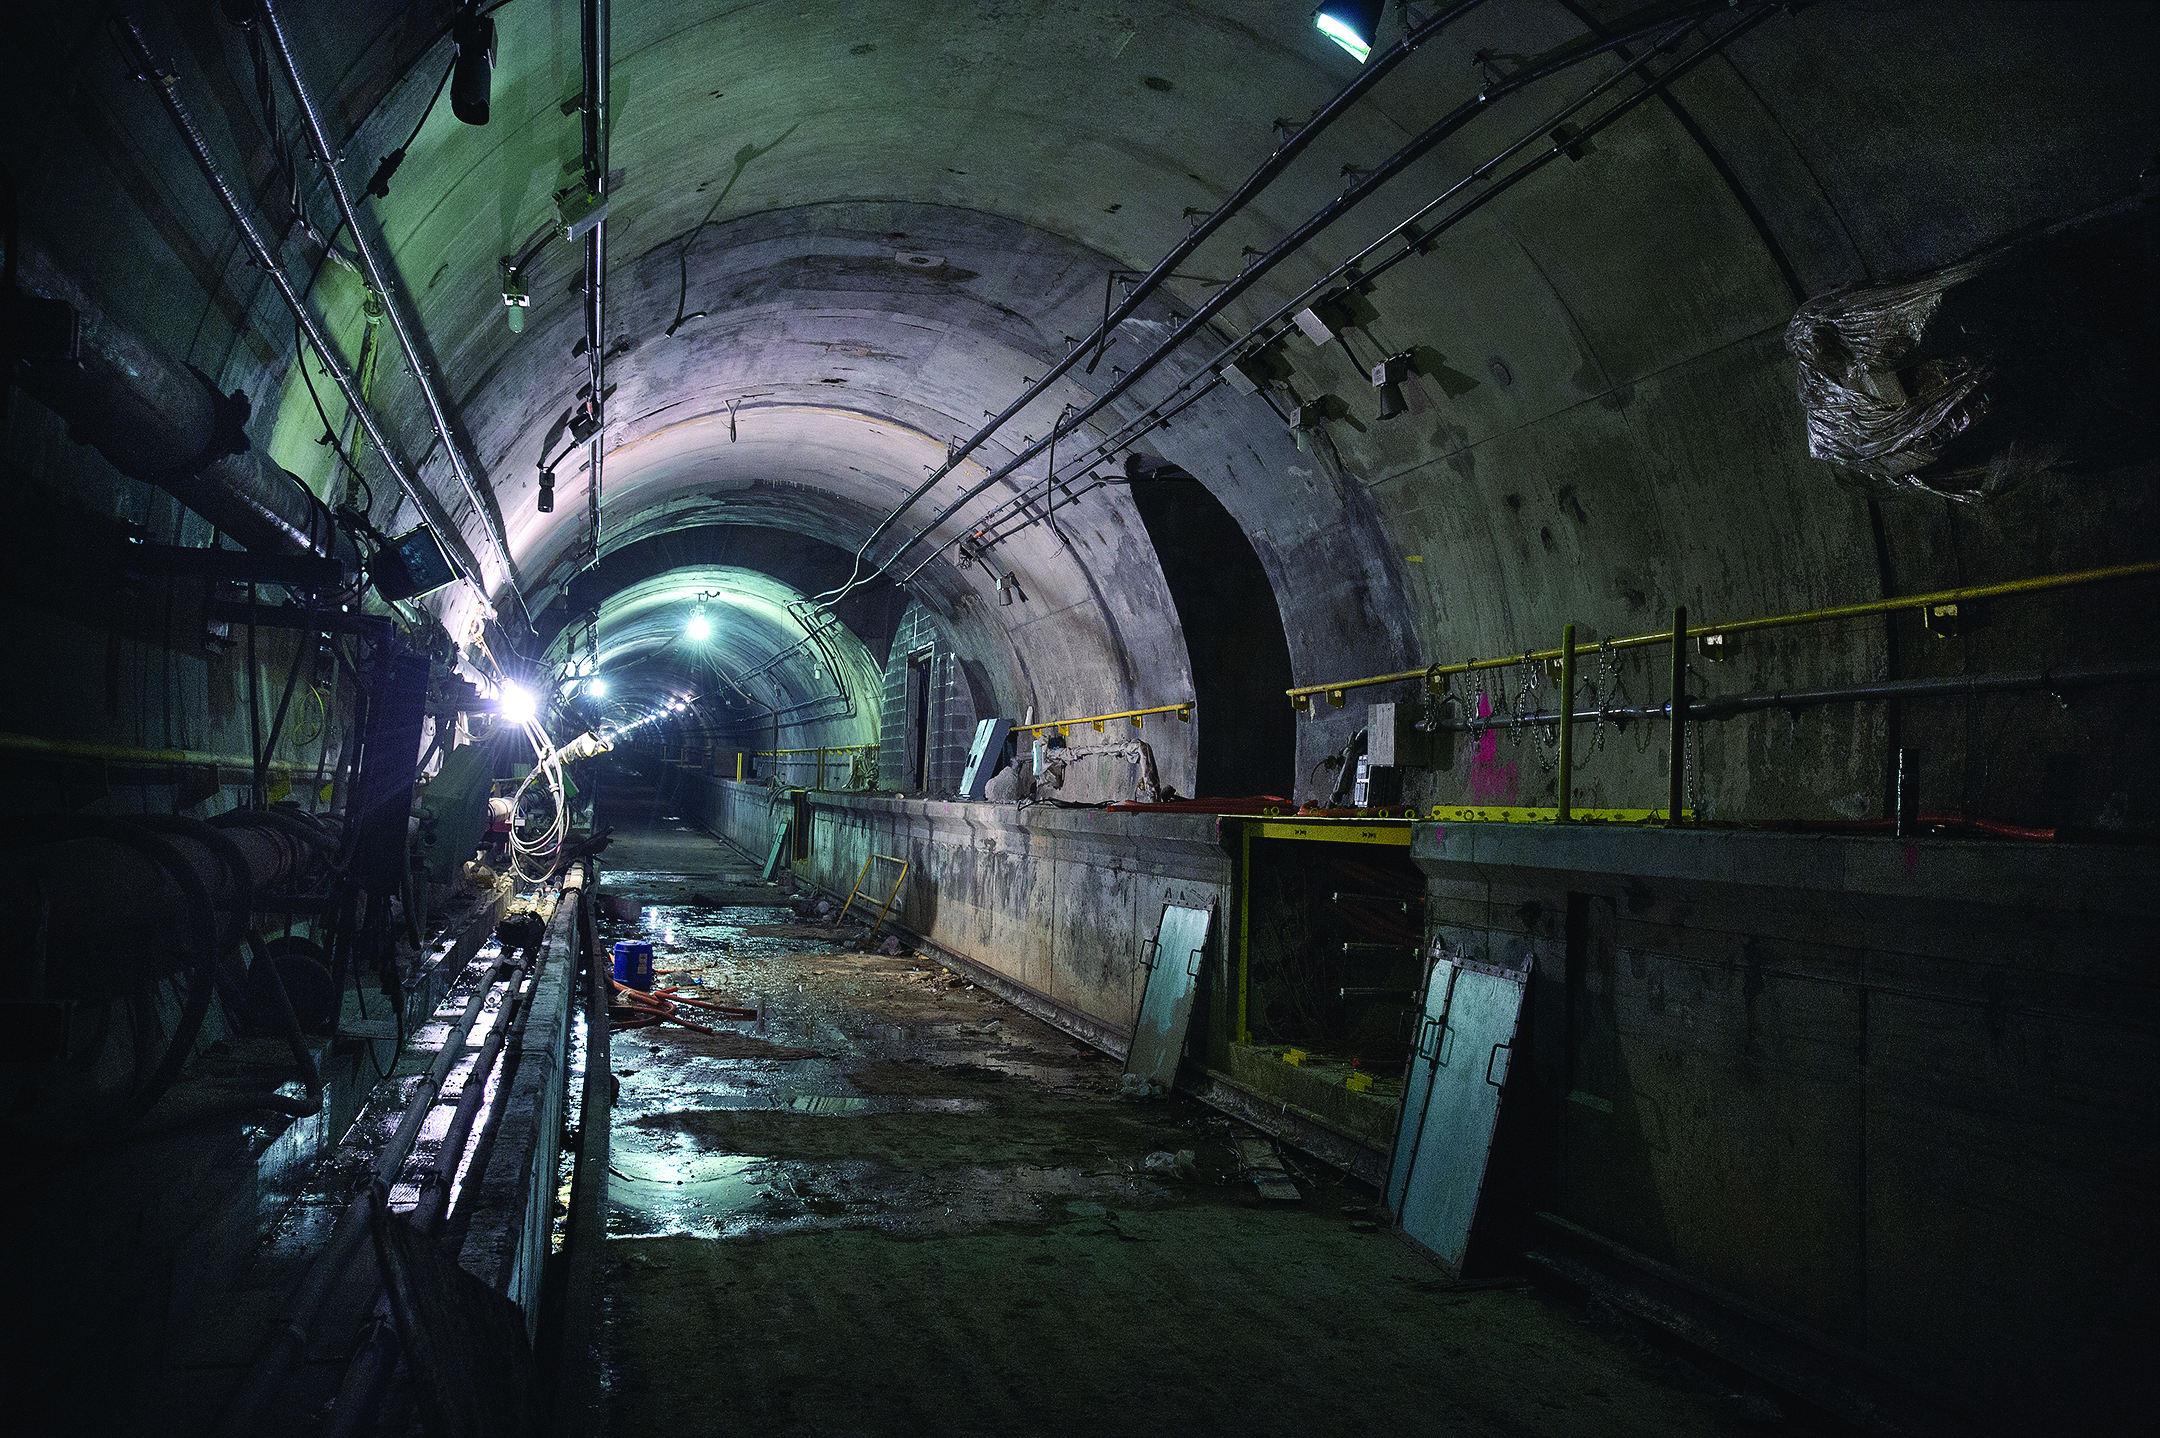 Work being done at the future 72nd Street Station of Second Avenue Subway.